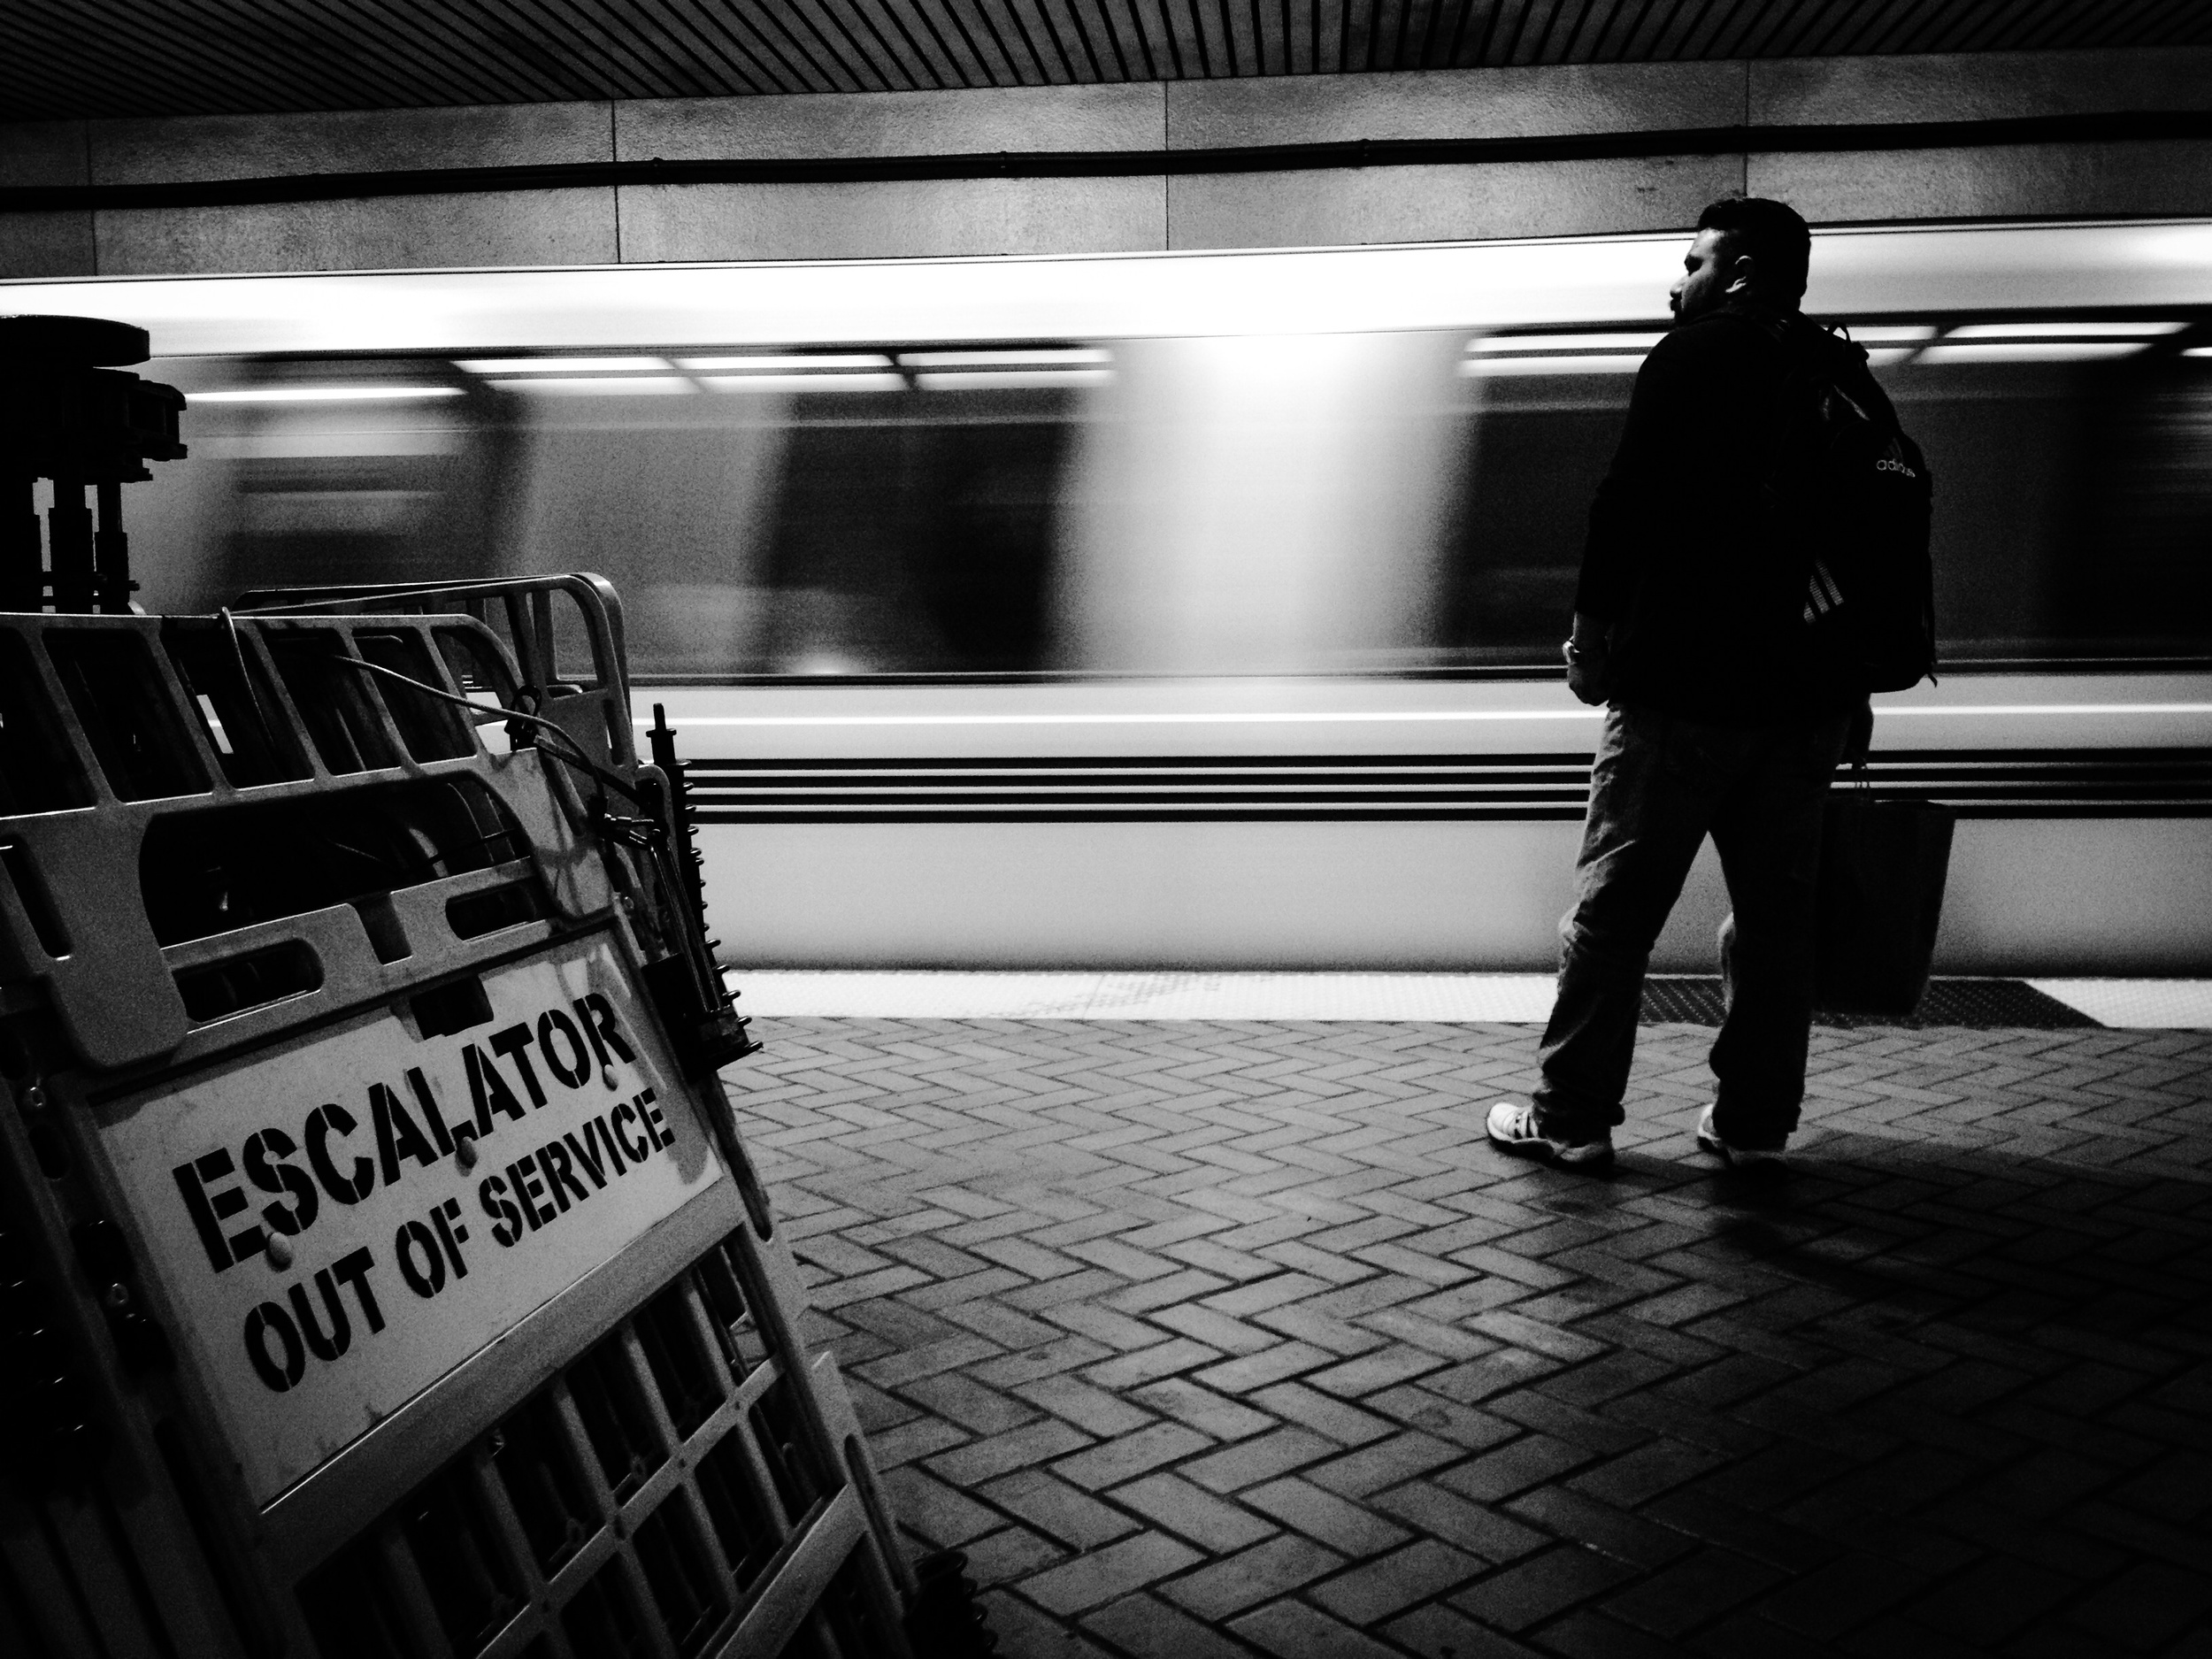 A BART train pulls into Powell Street Station in San Francisco, Calif. Monday, Dec. 16, 2013.